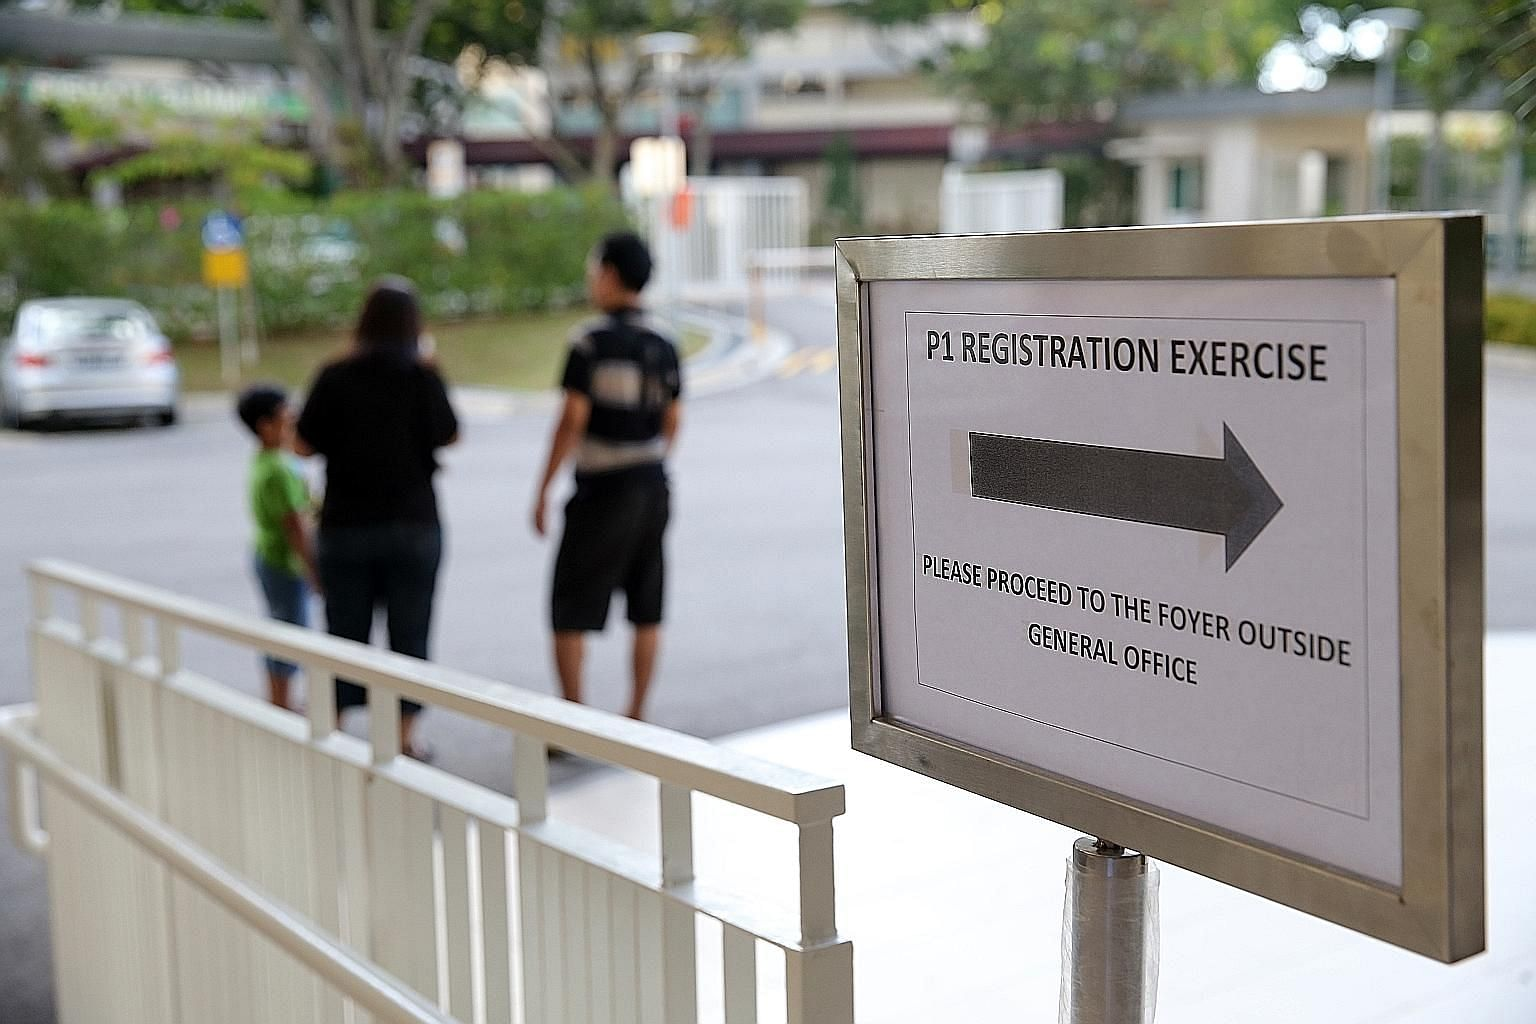 The Straits Times' online tool uses data for Primary 1 registration from the past 13 years to forecast how likely balloting will take place in a school, based on the number of applicants in past years.